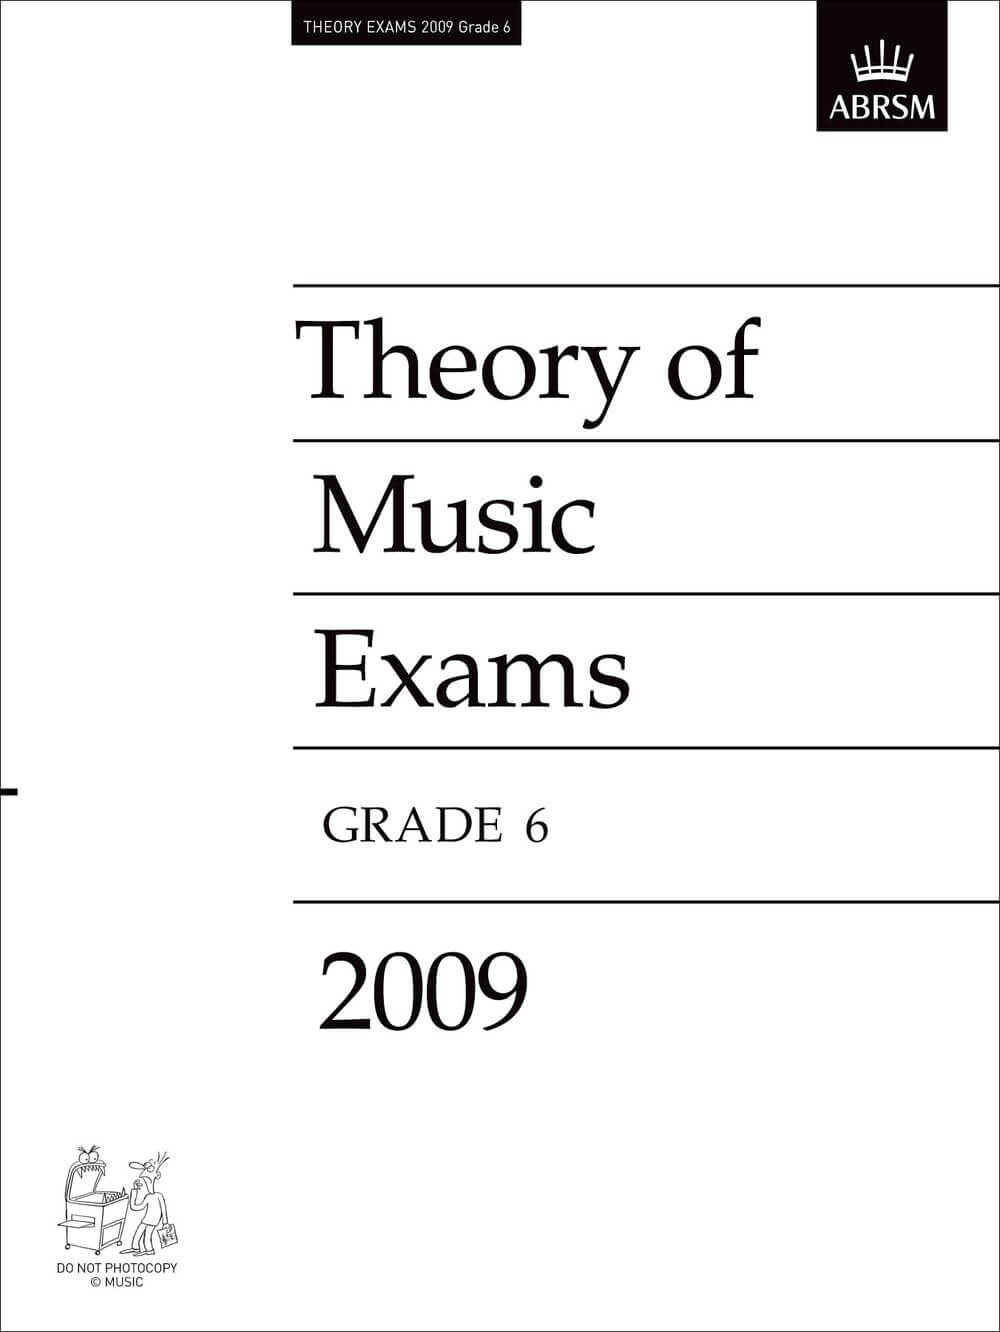 Theory of Music Exams, Grade 6, 2009